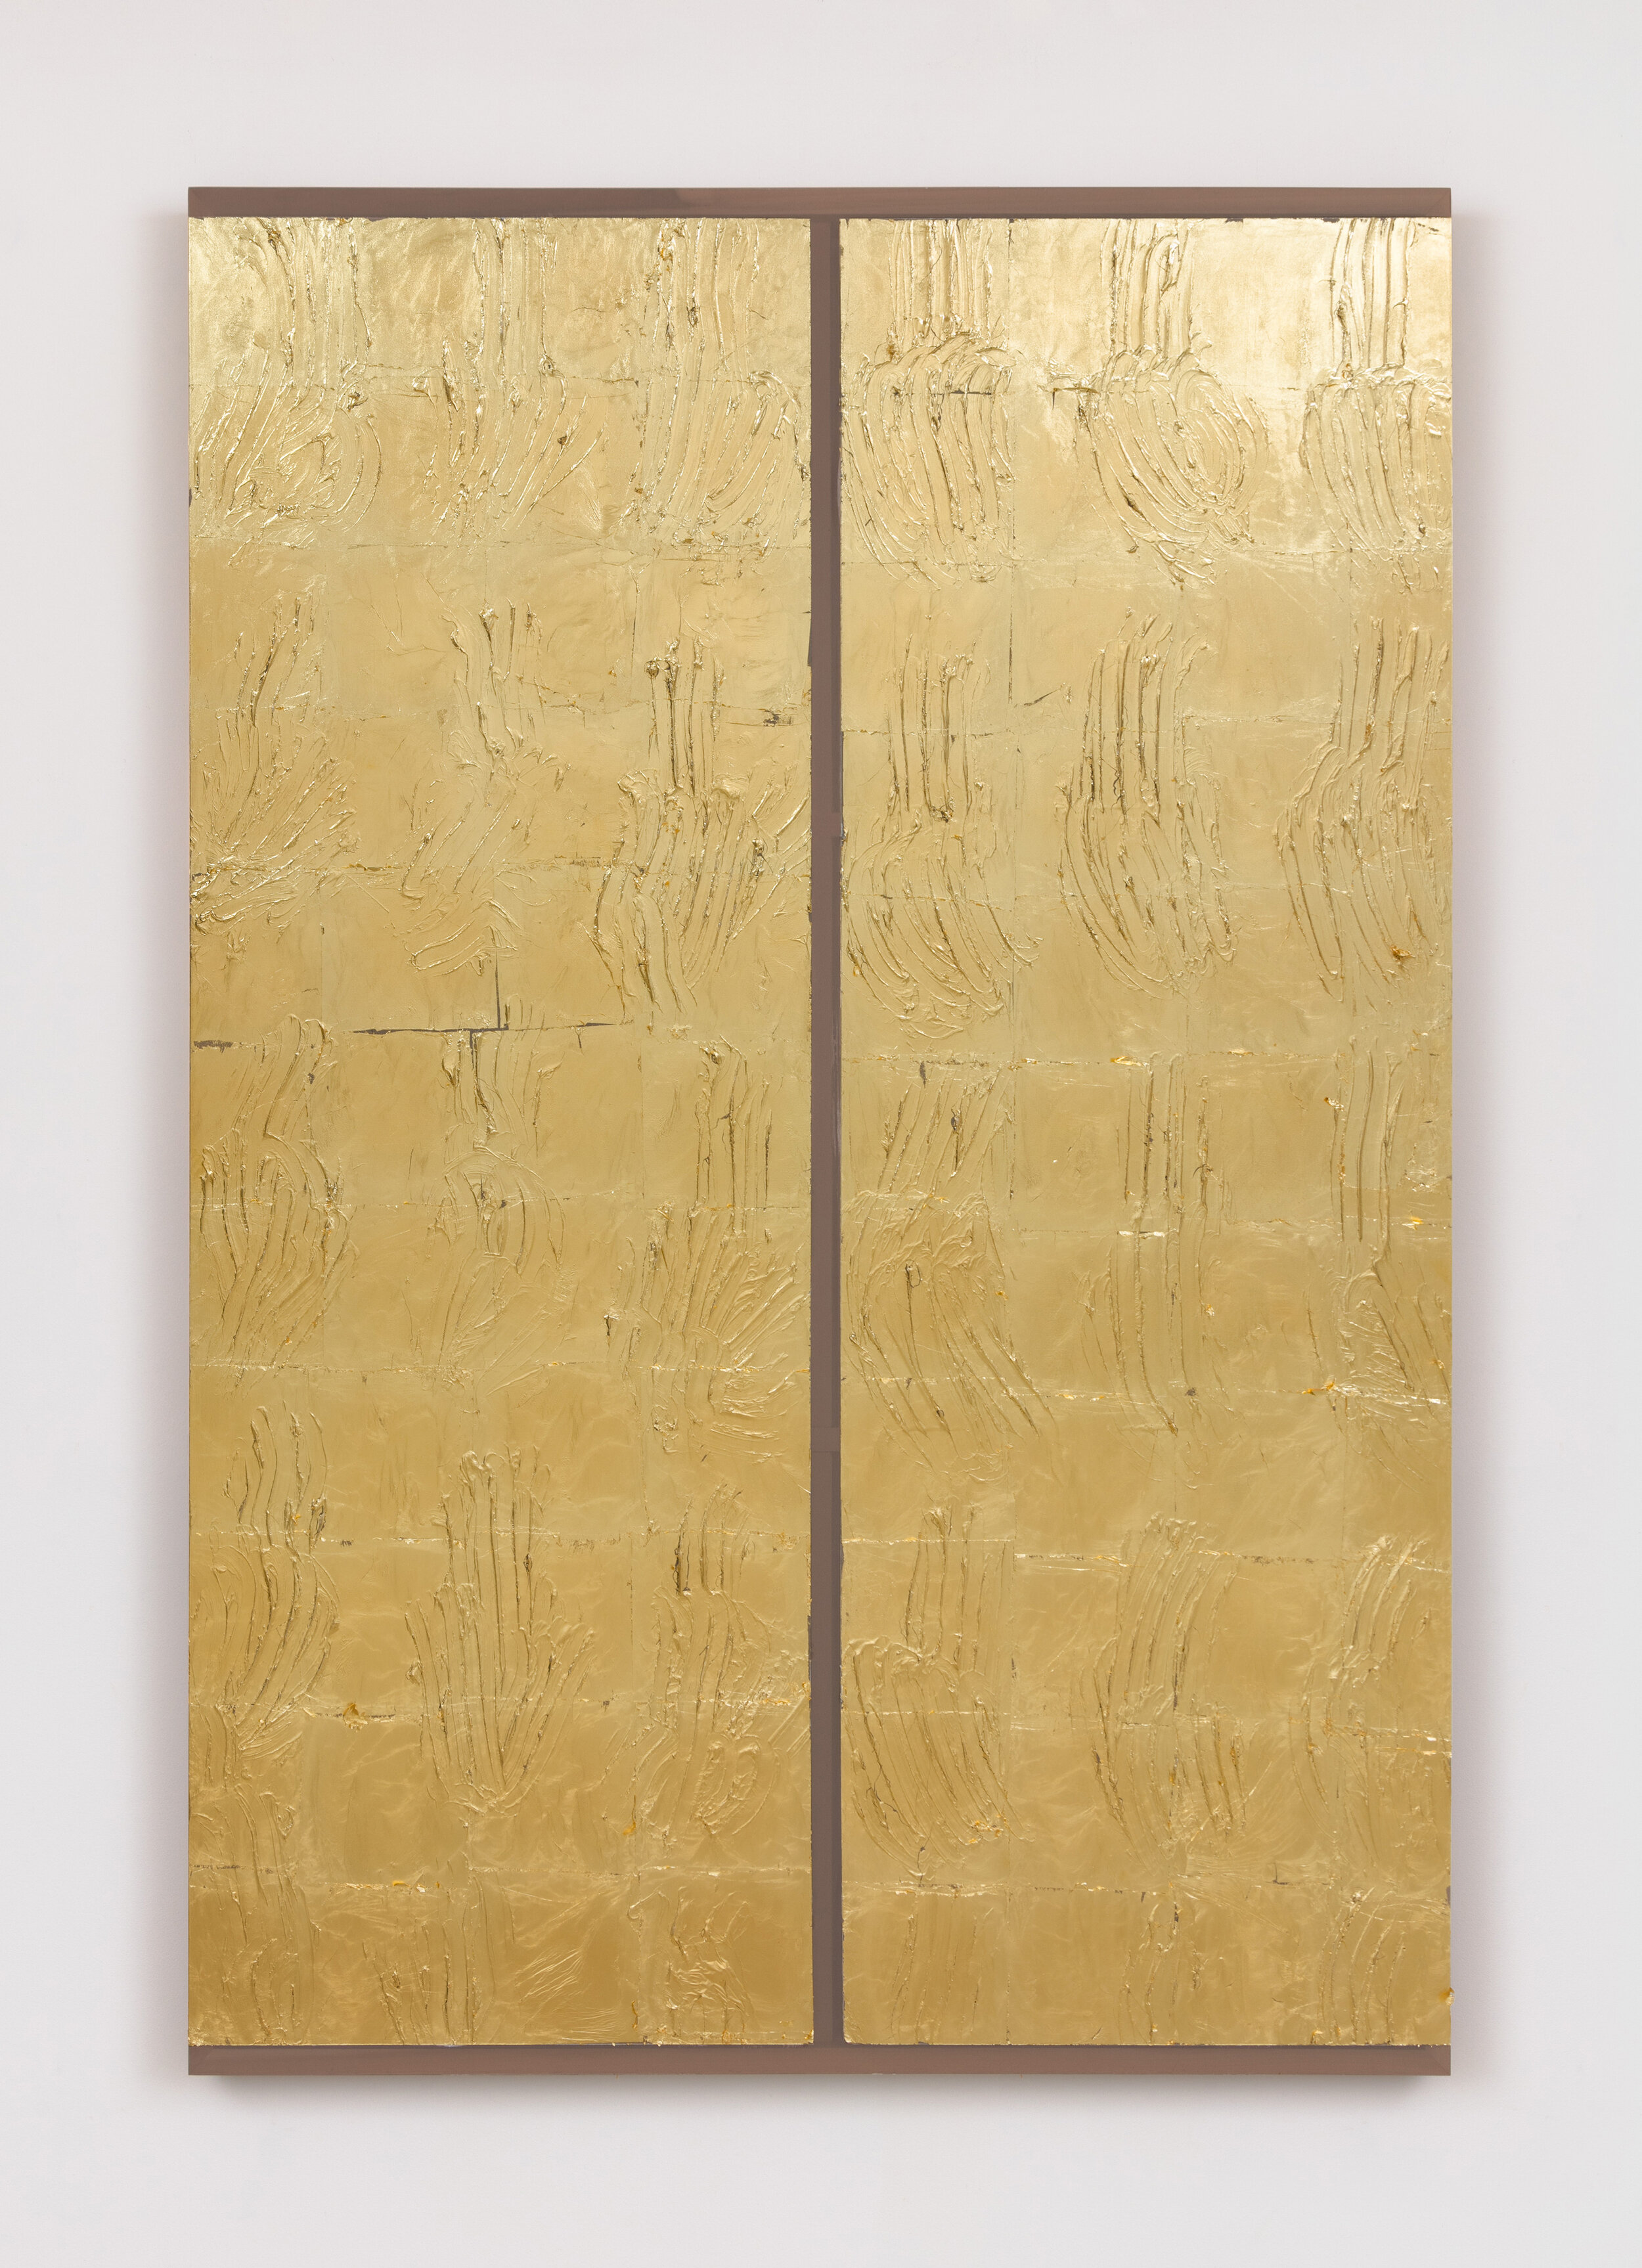 Gilded (Dividing Time) , 2019 Acrylic and gold leaf on fabric, poplar 60 x 40 x 2.5 inches